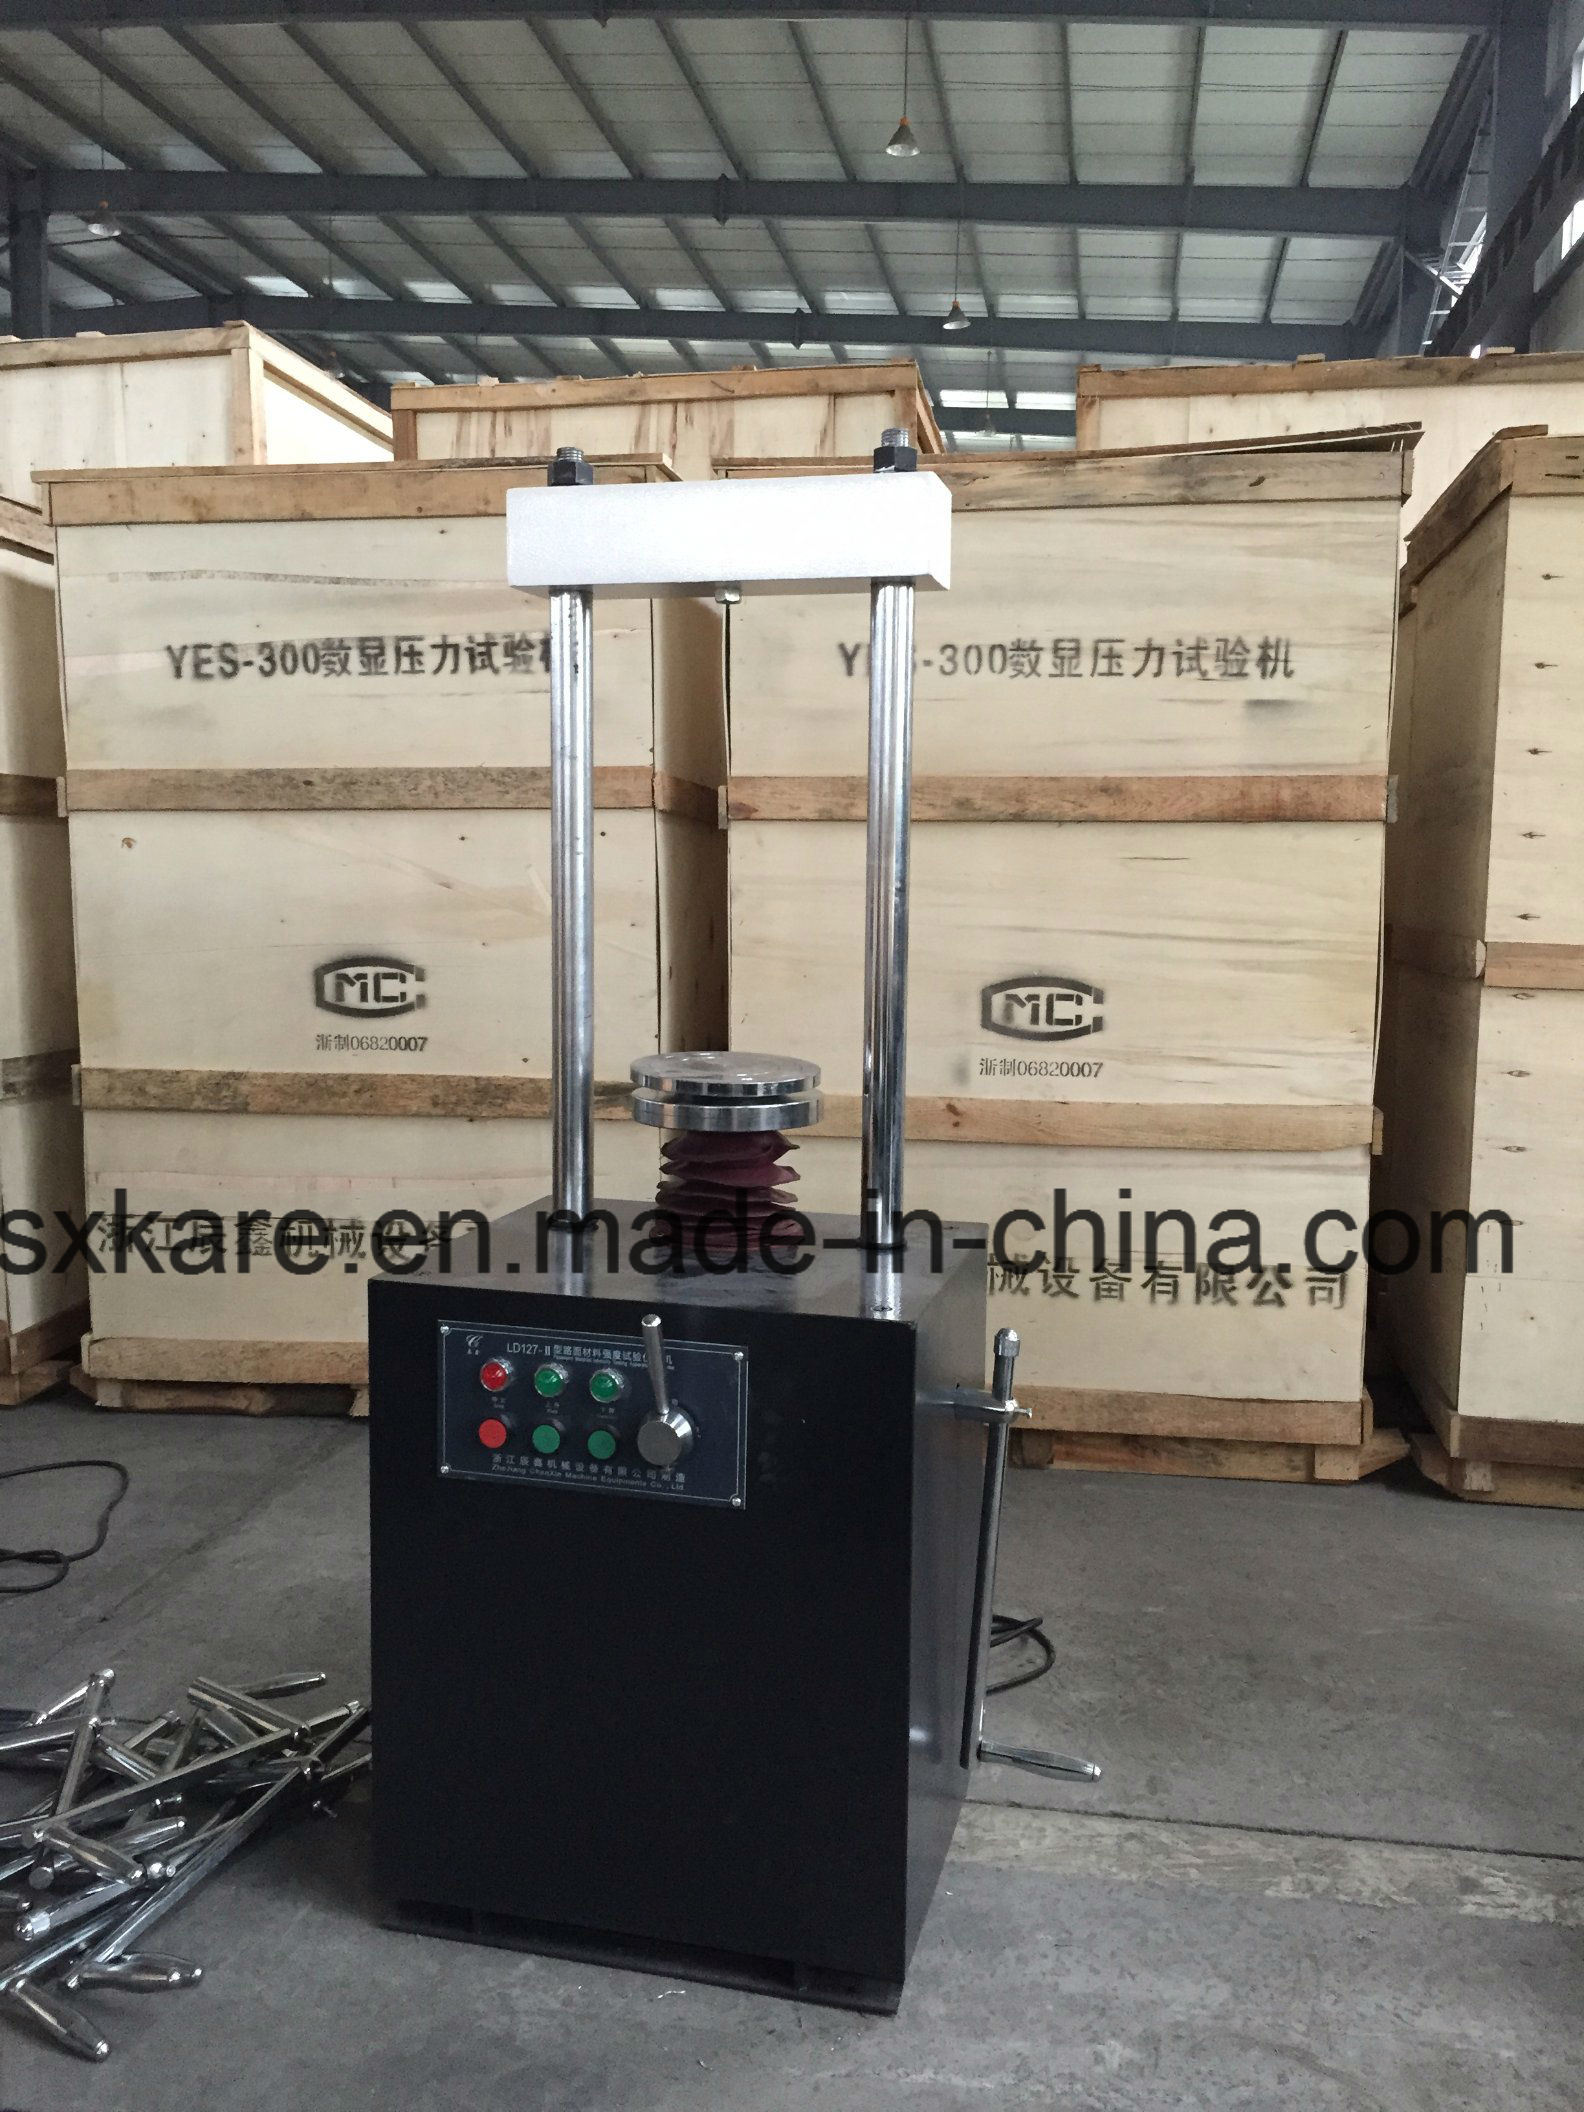 Pavement Material Strength Testing Machine Mainframe, Cbr Testing Machine (LD127-II)